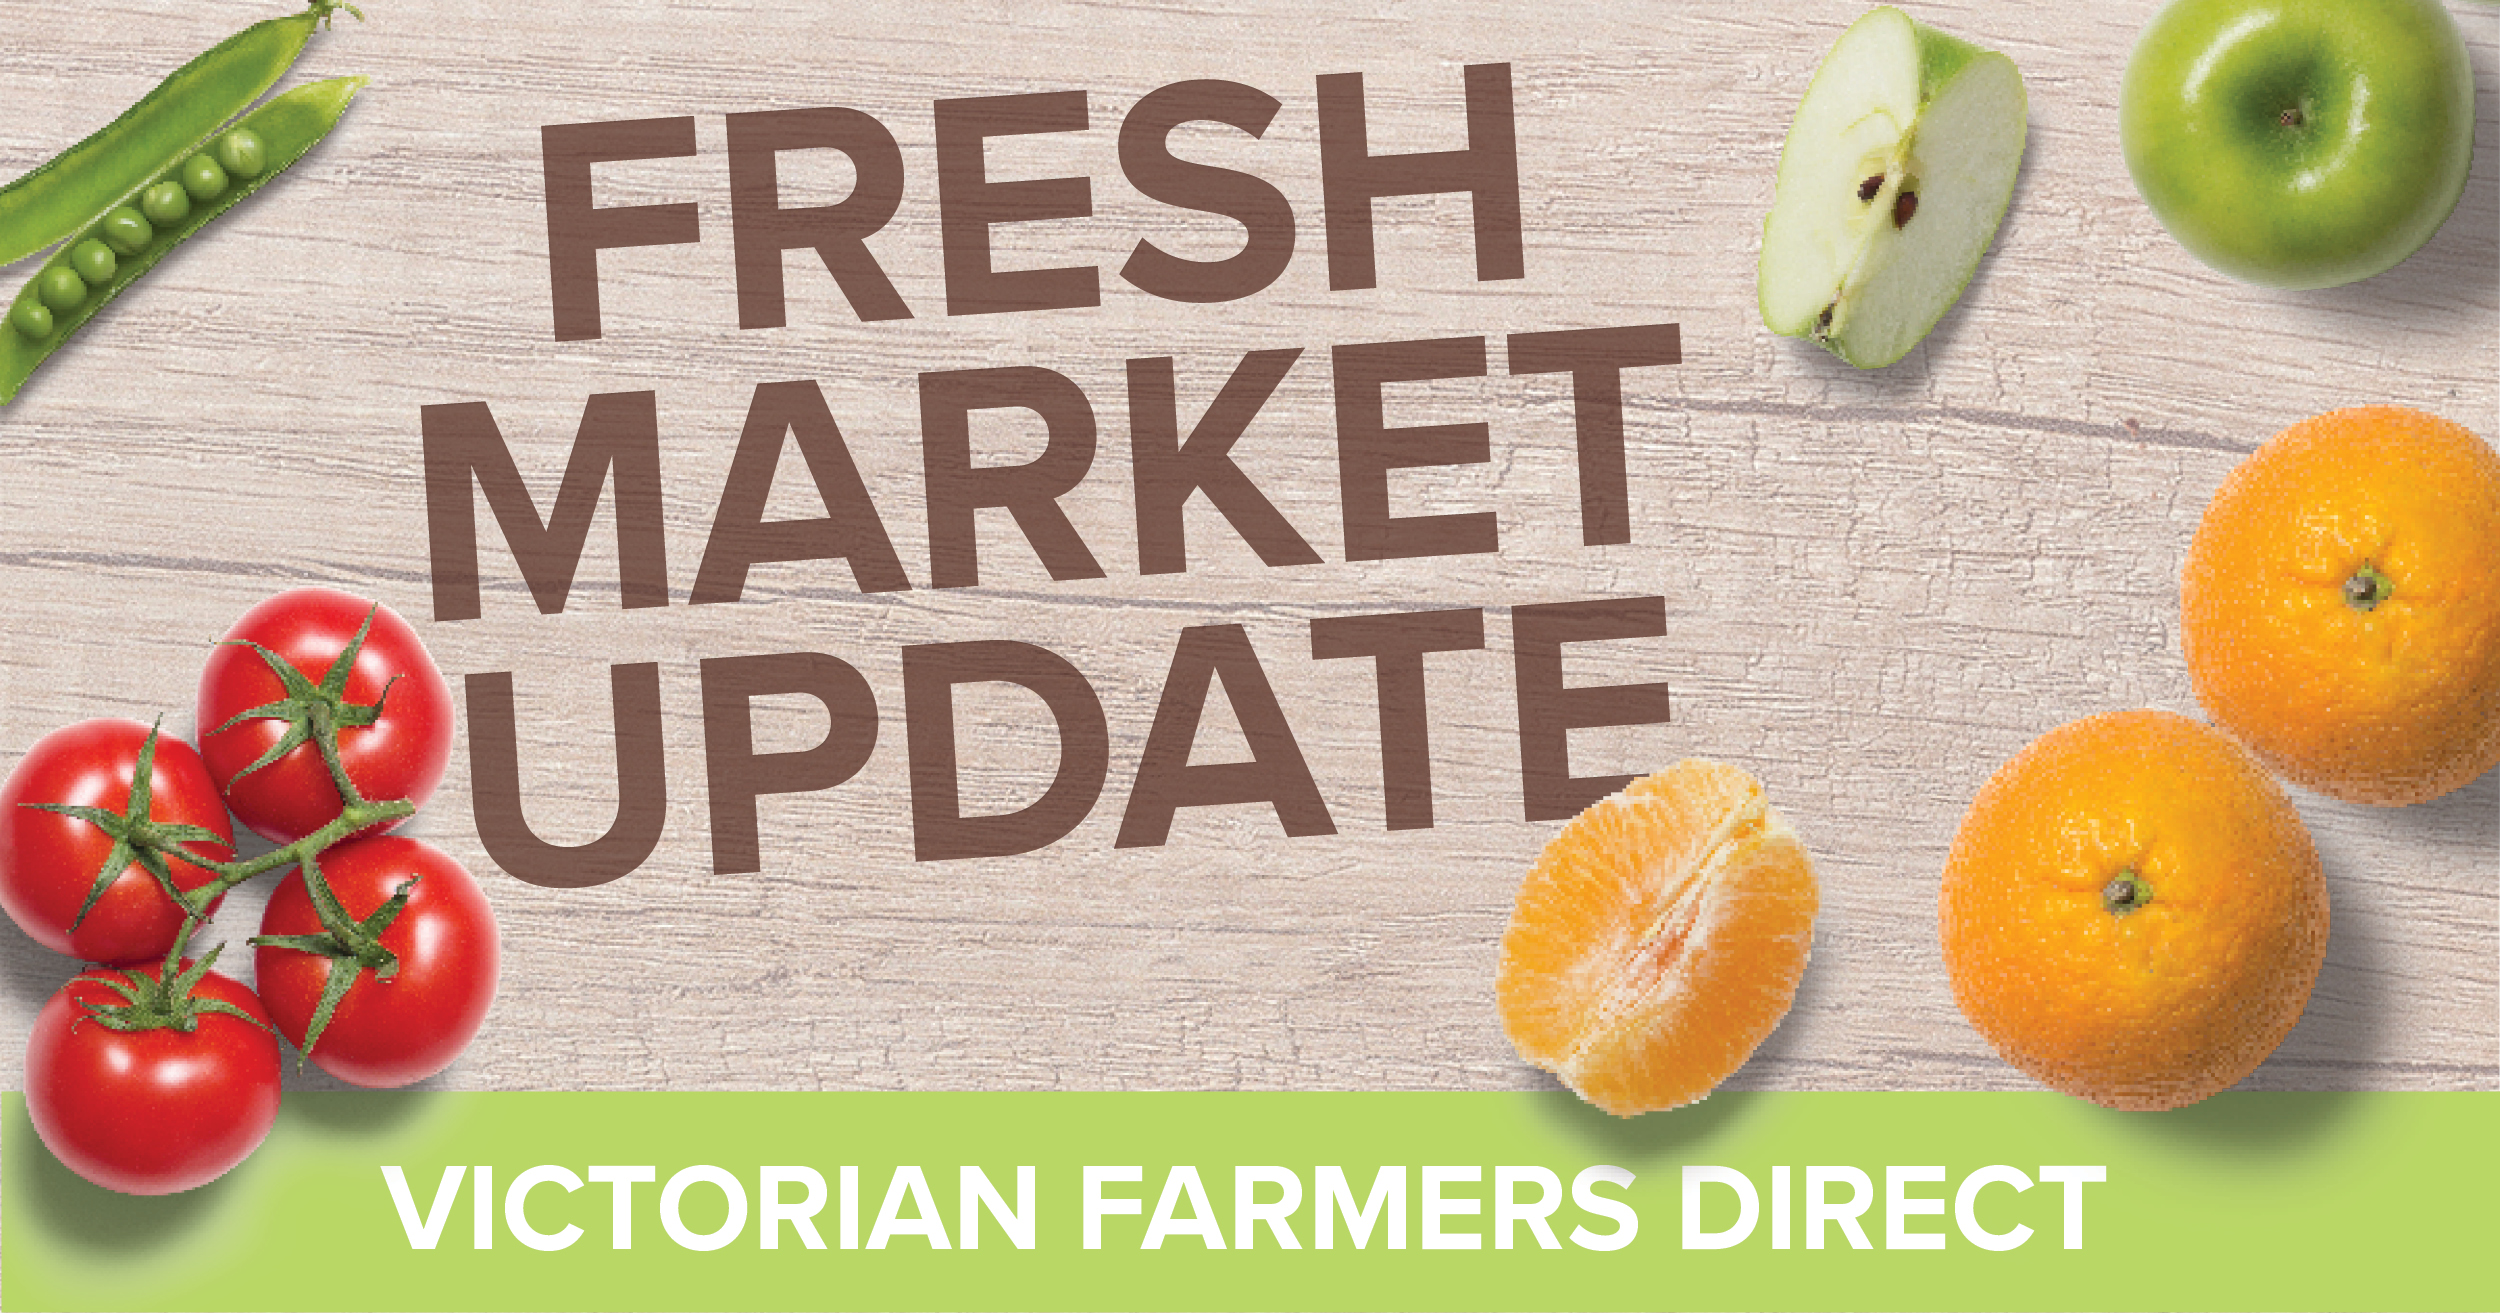 Fresh Market Update Link Tile.jpg